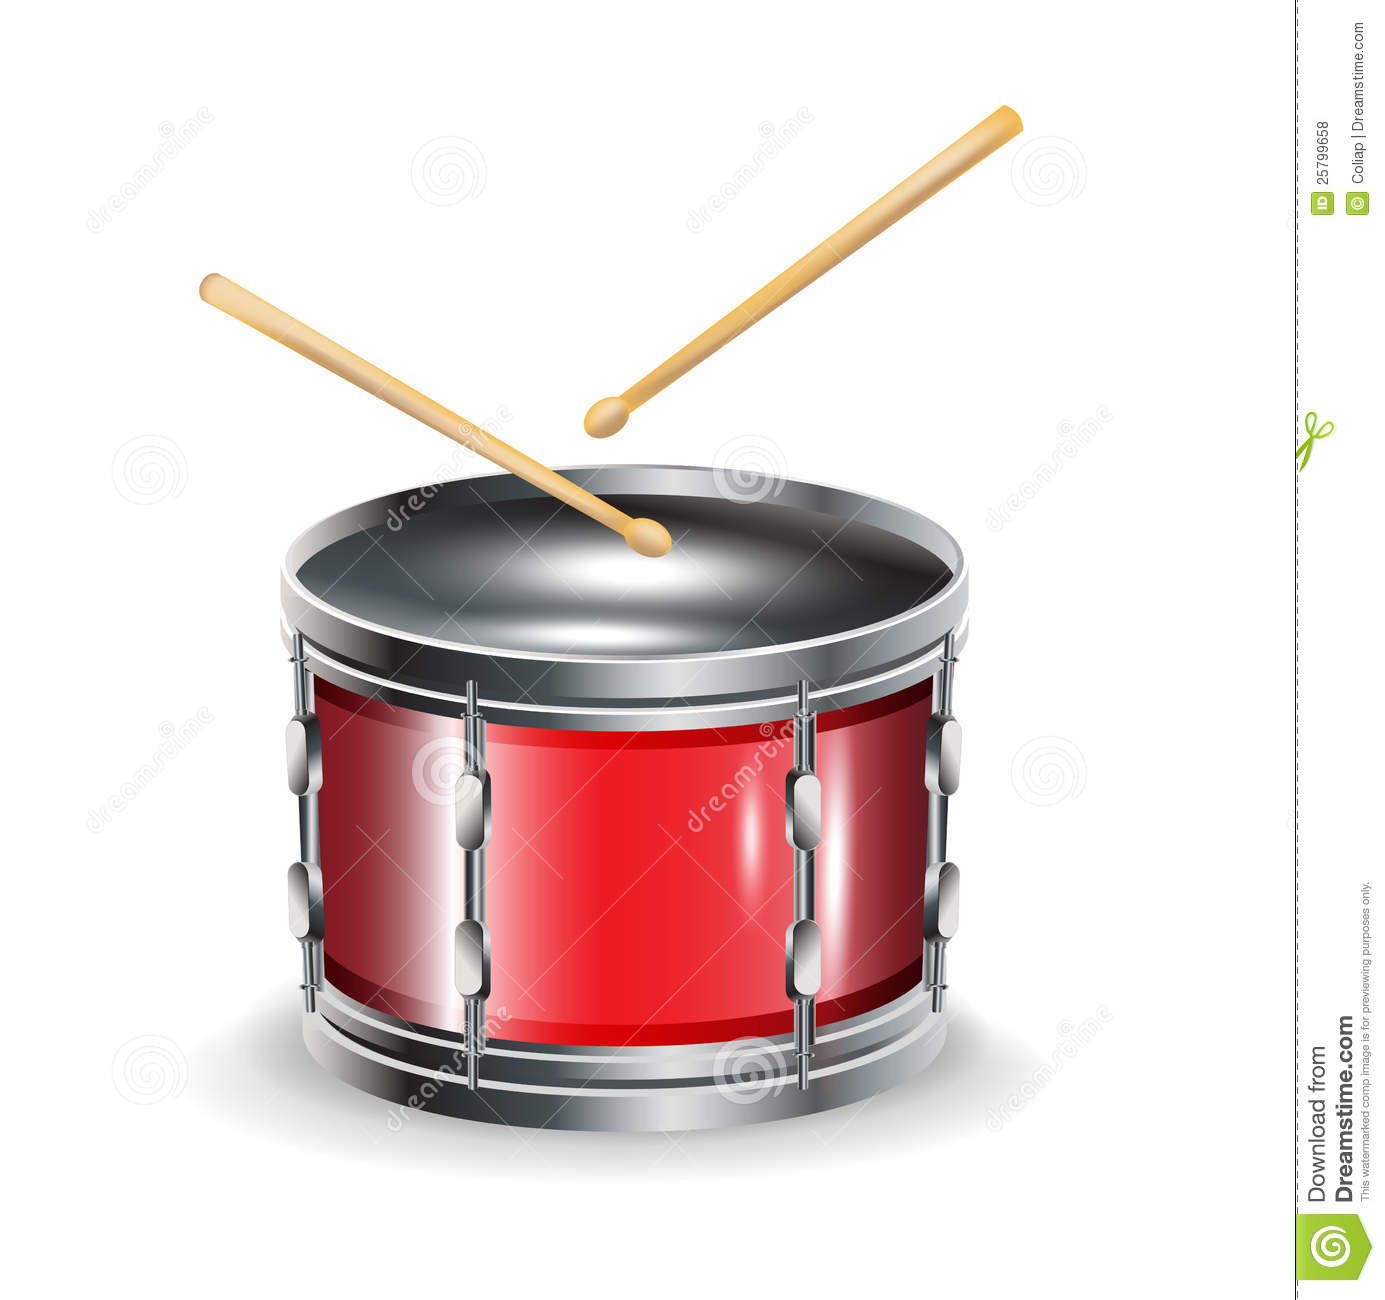 drums with sticks royalty free stock photos image 25799658